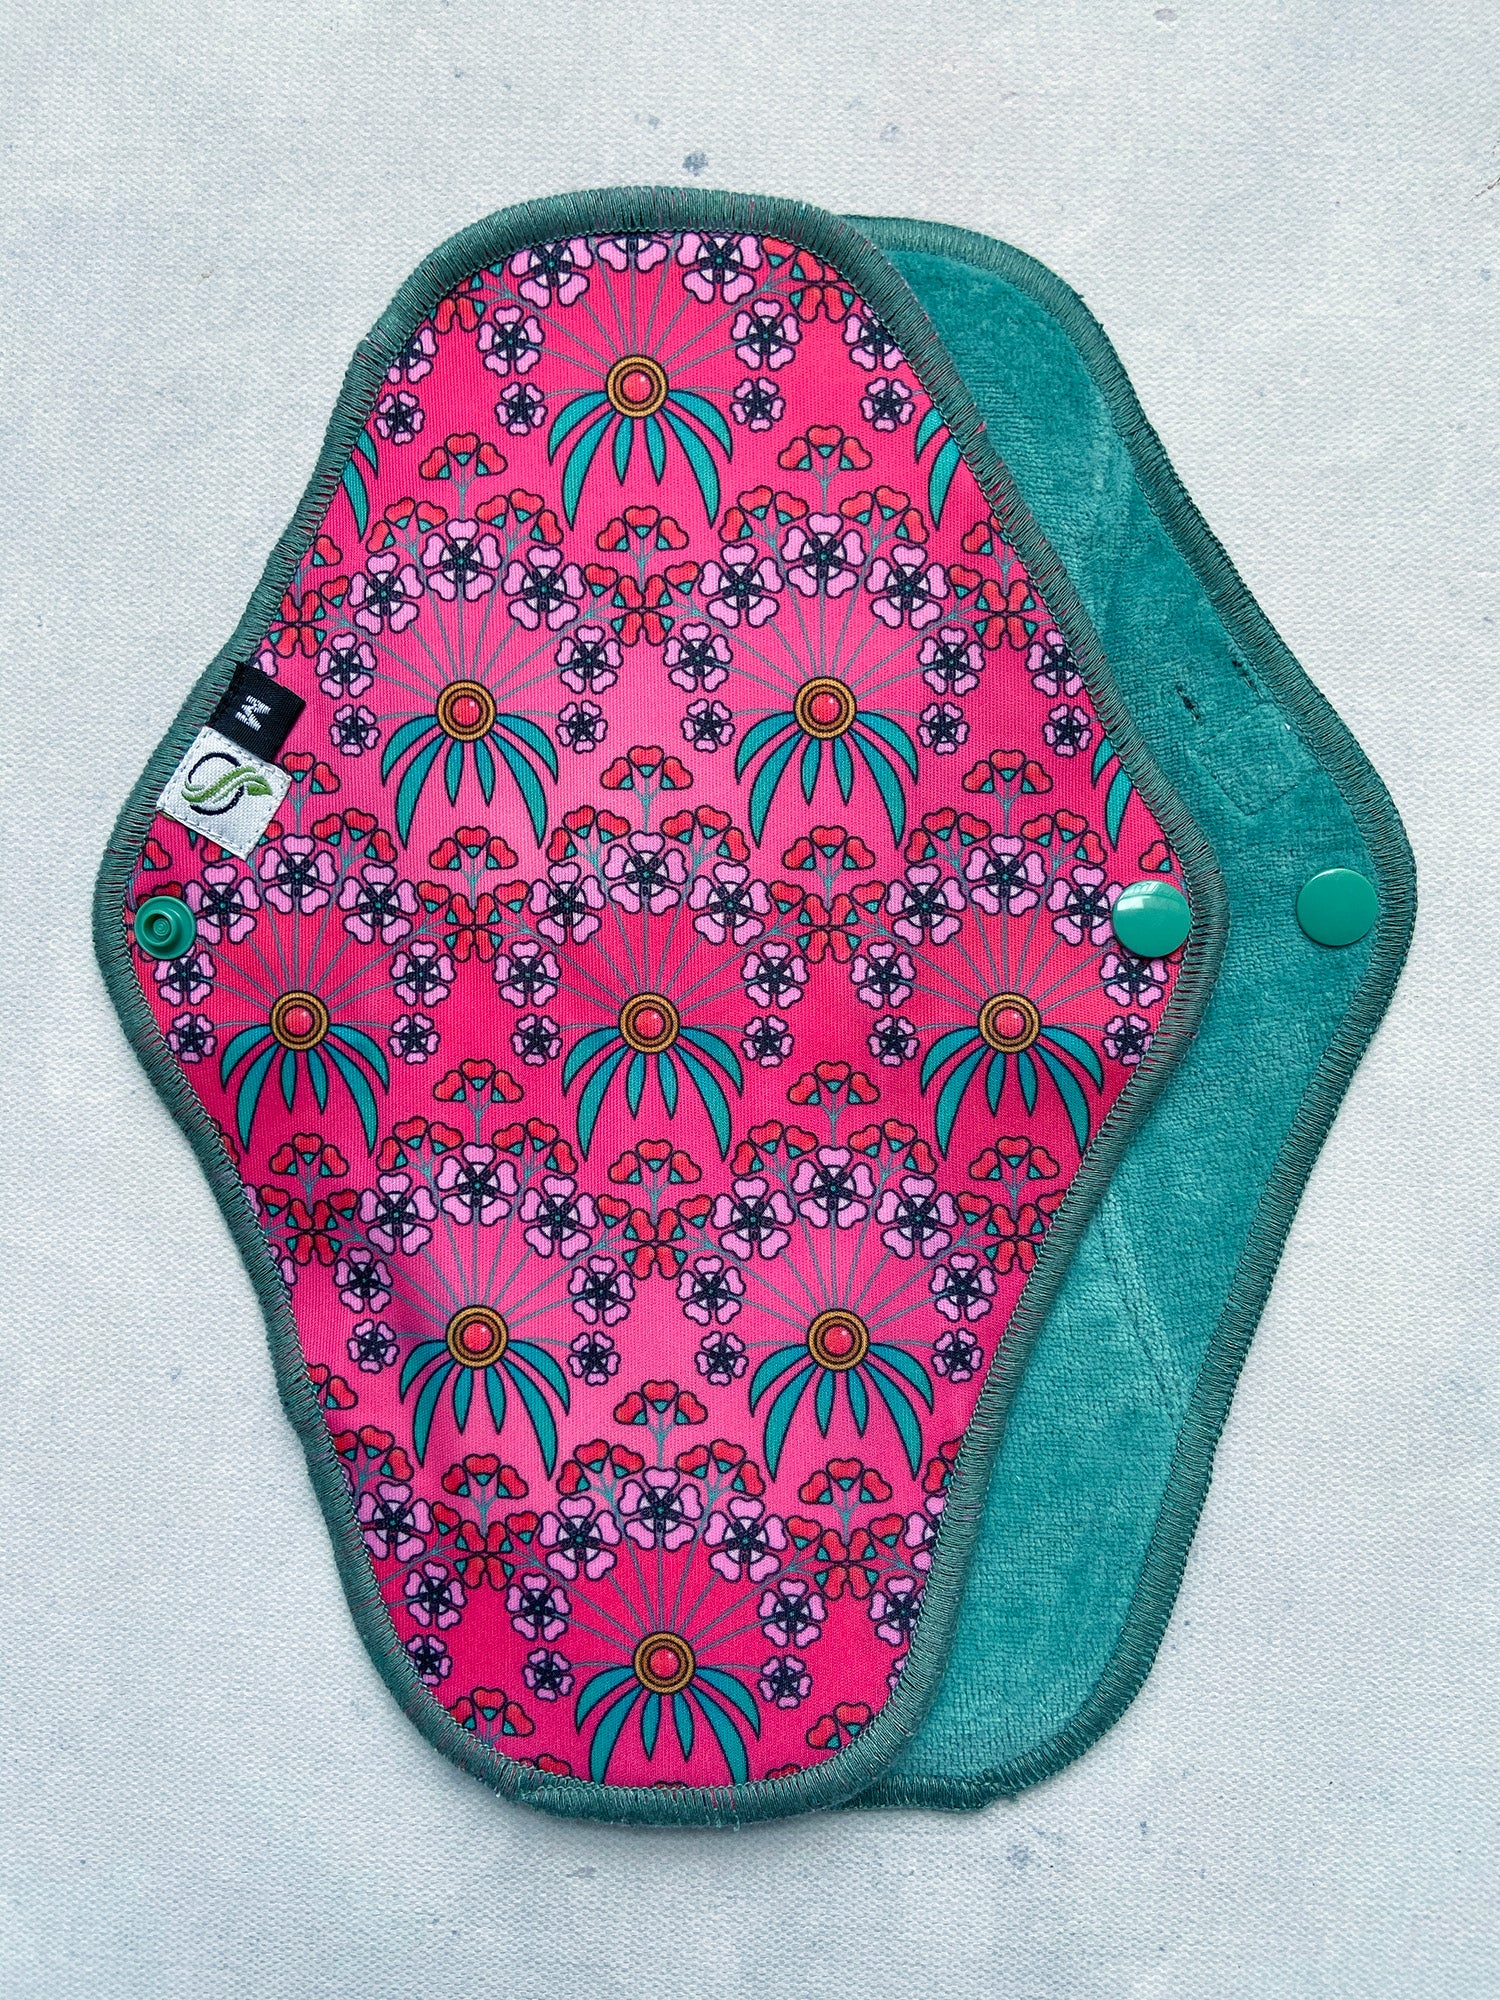 Cloth Sanitary Pad - Size Medium (Daytime/Light flow)